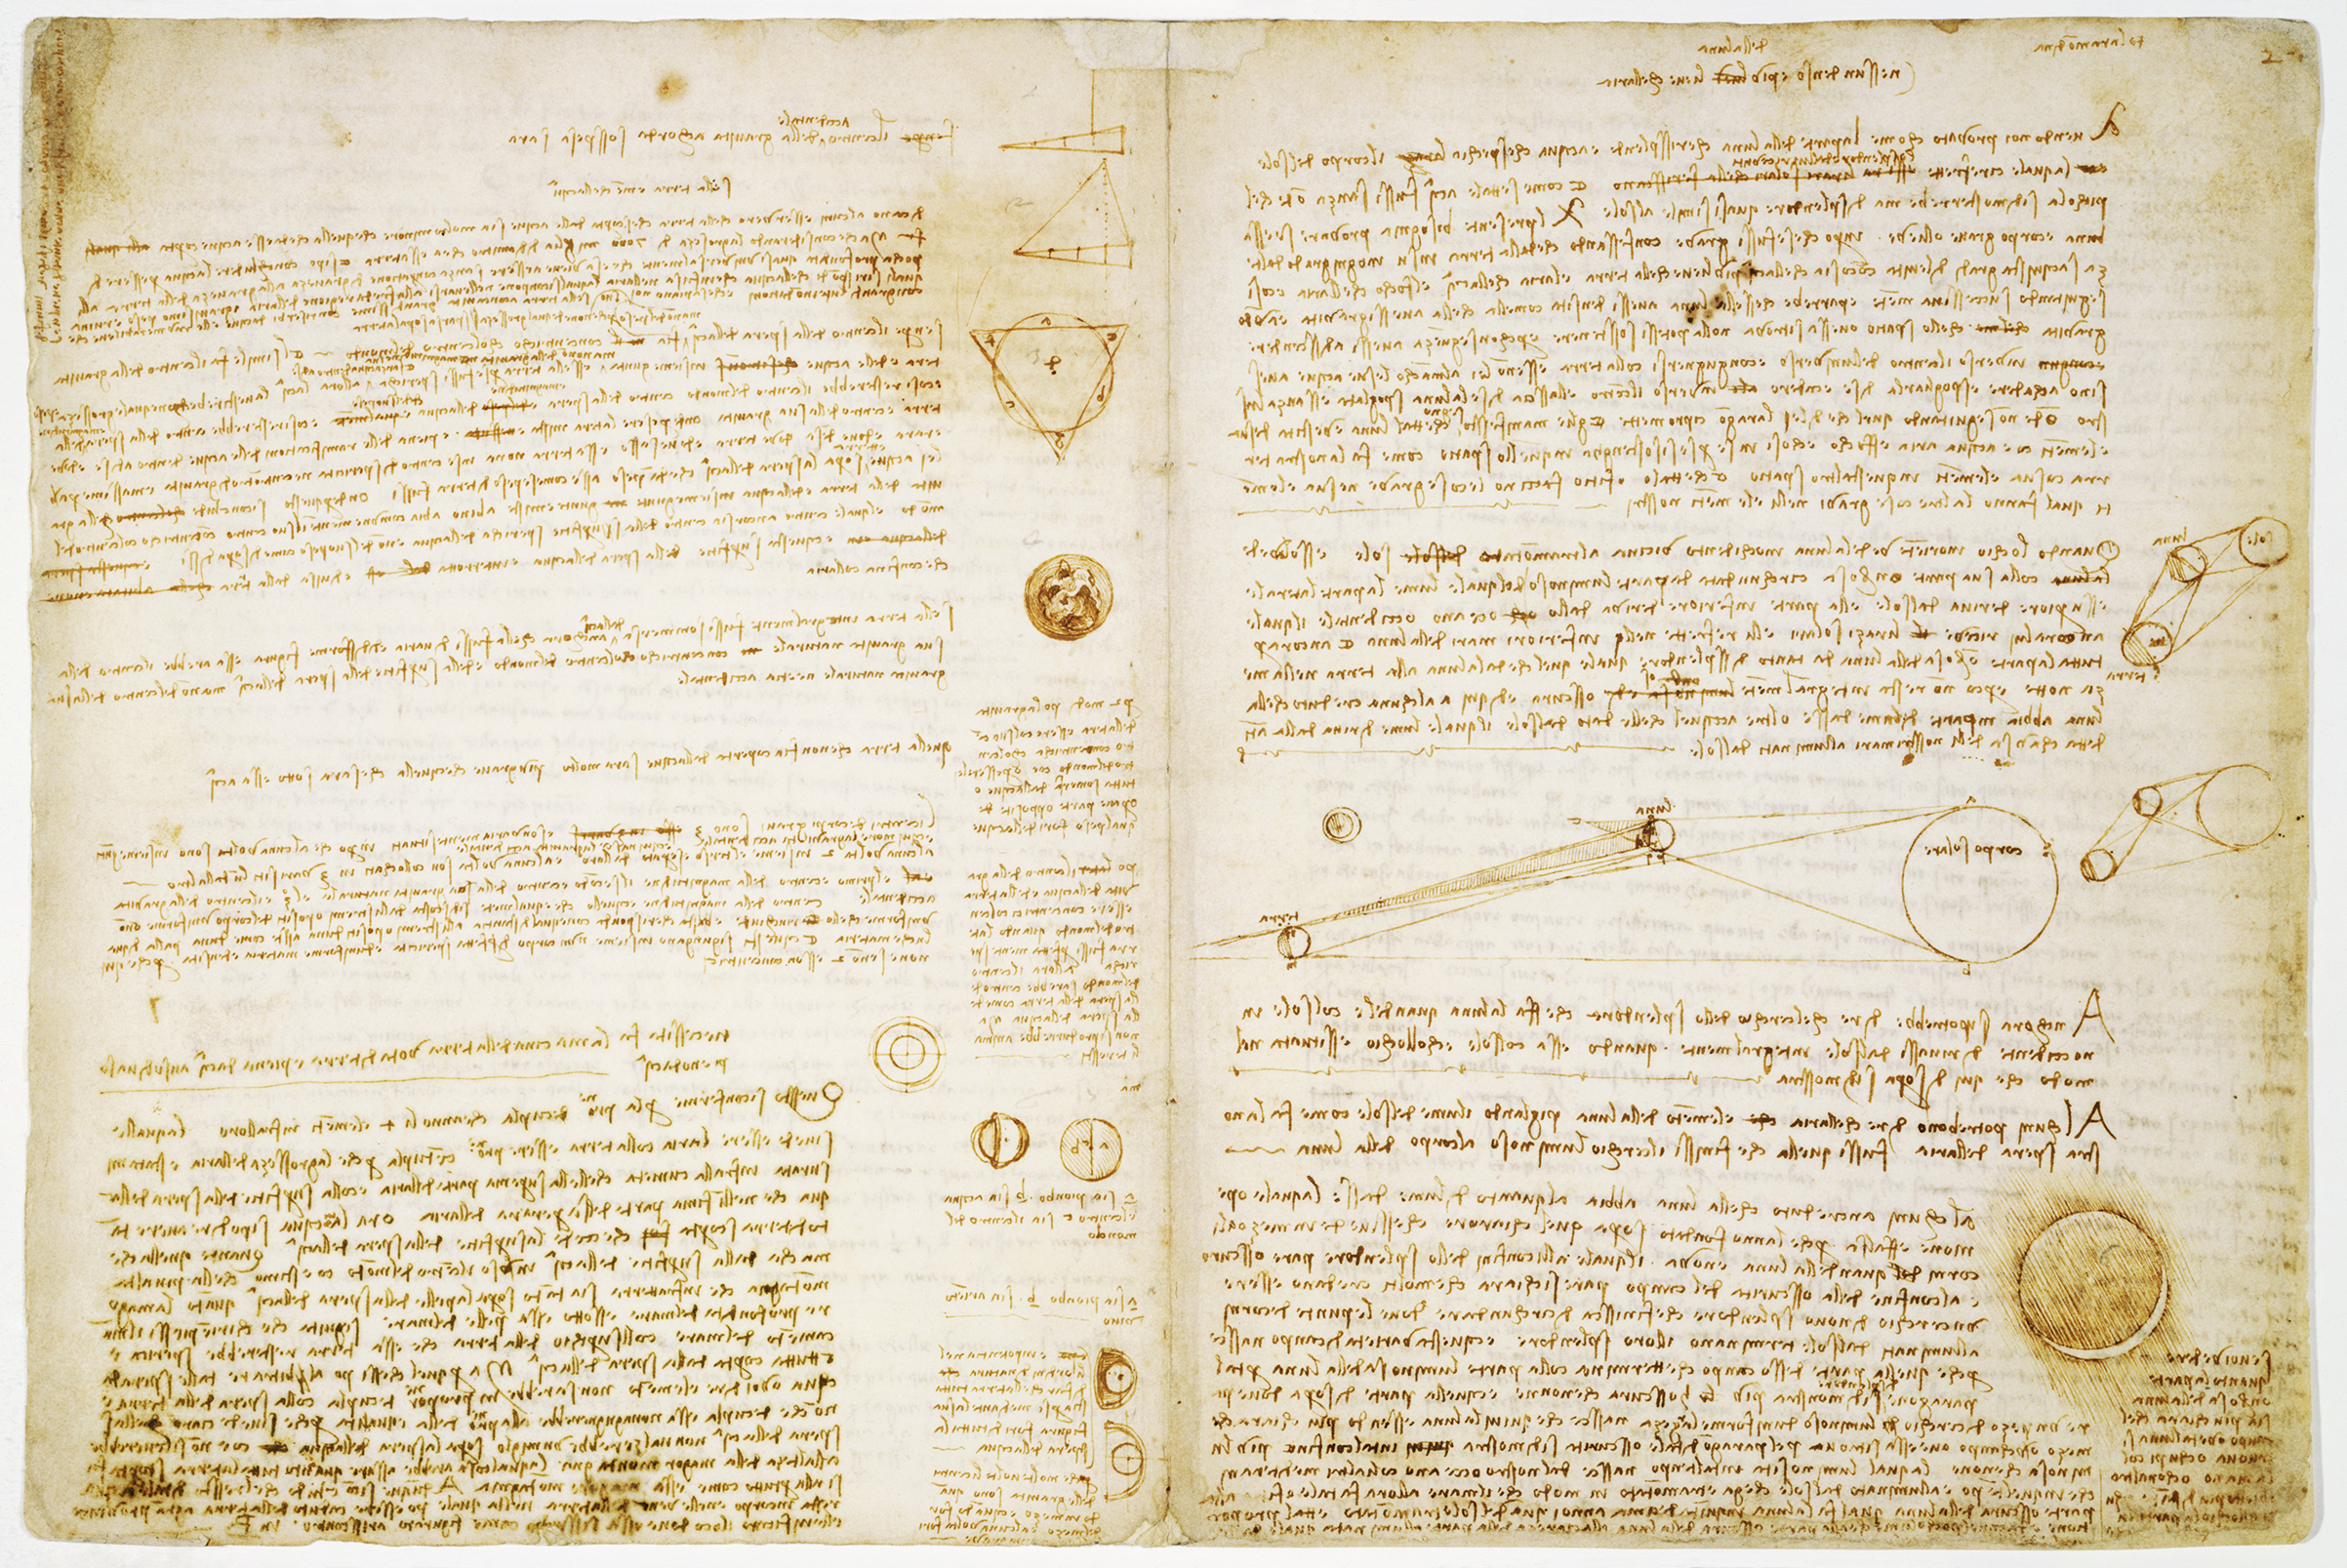 2019 marks the 500th anniversary of Leonardo's death. To help celebrate the occasion, the Codex Leicester will be on display in several European museums